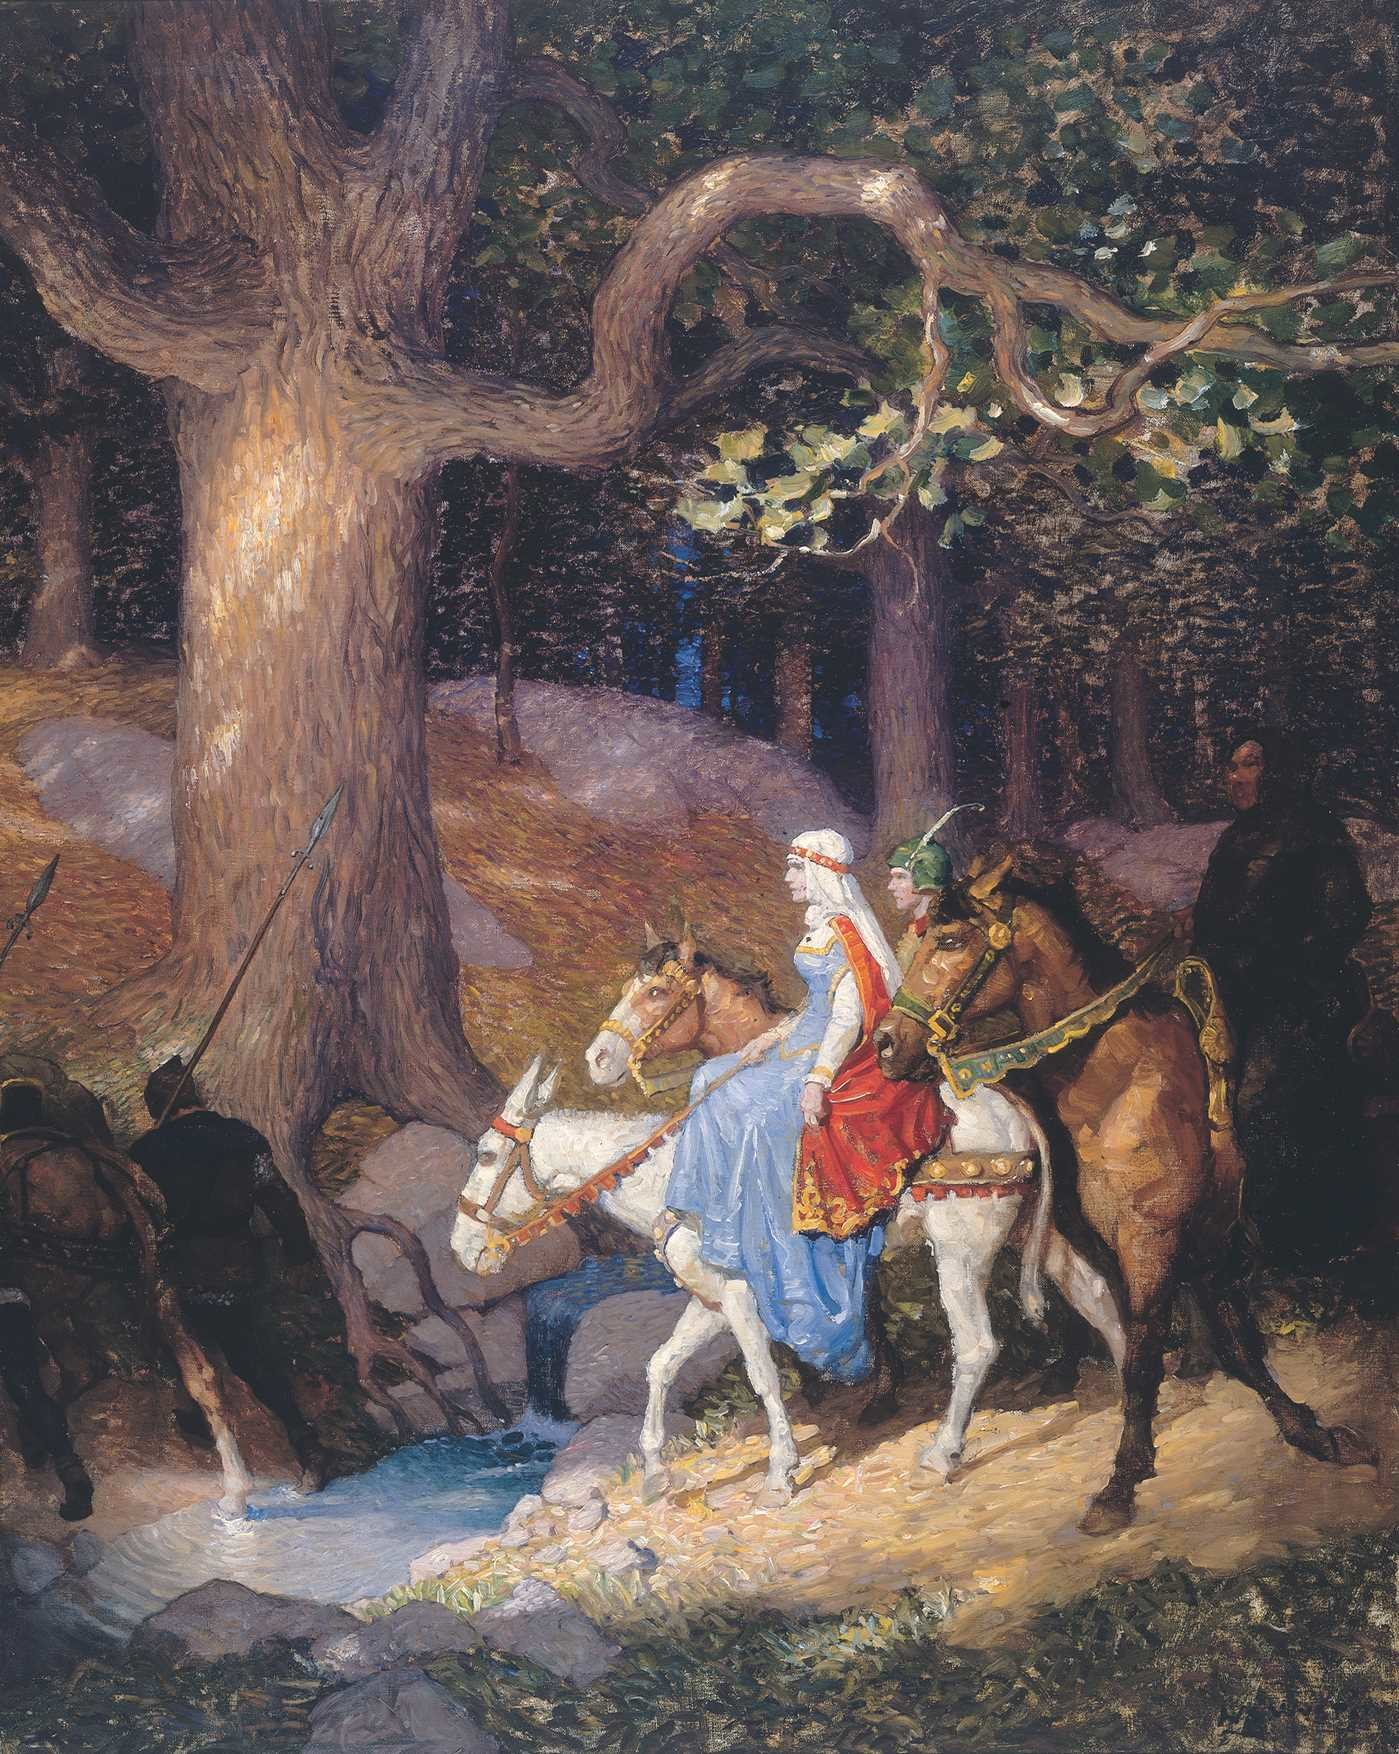 a introduction of robin hood And robin hood could surely not resist taking part in any competition to prove that he was the best robin, this competition is being held to trap you, said one of the men it would be foolish to talk into the lion's den, said another.